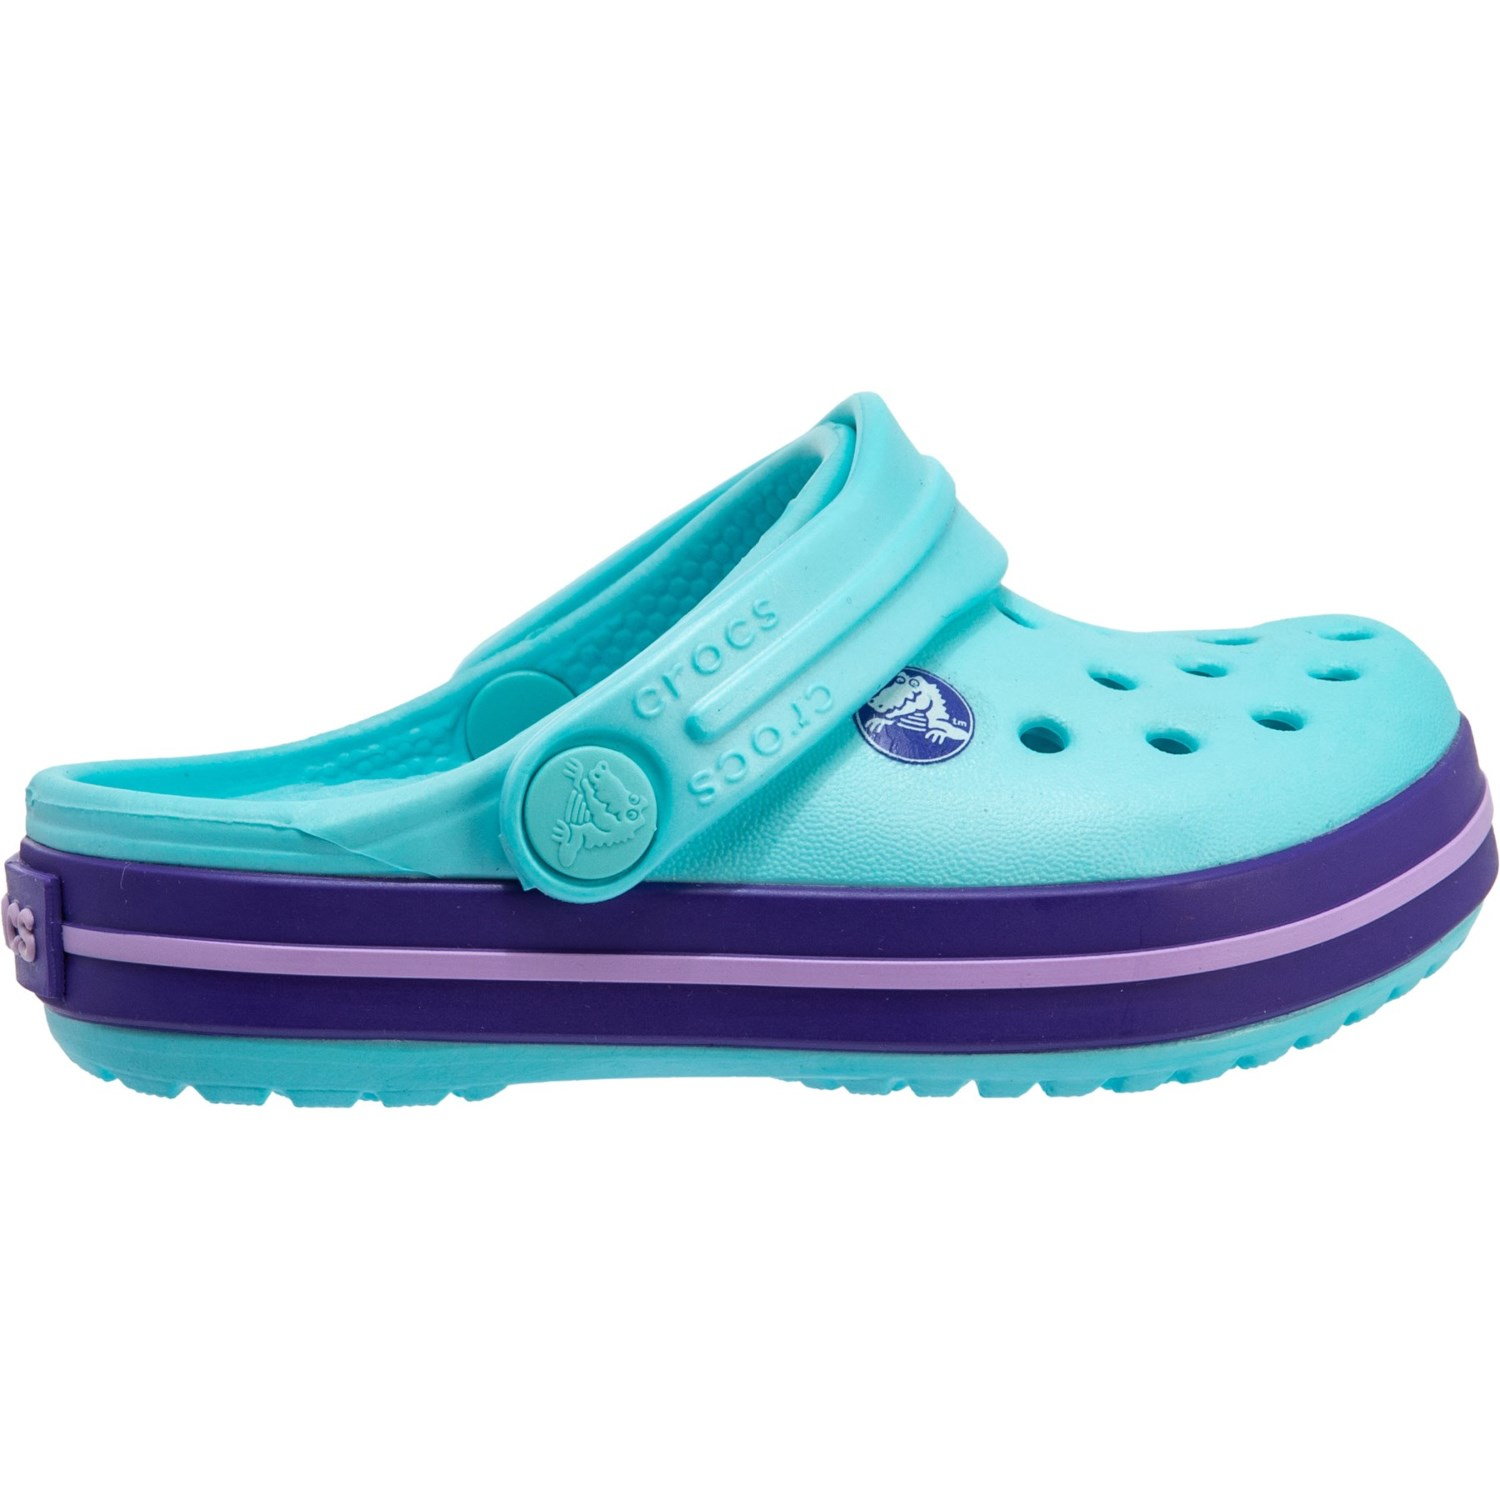 06701f334b Crocs Crocband Clogs (For Boys) - Save 40%